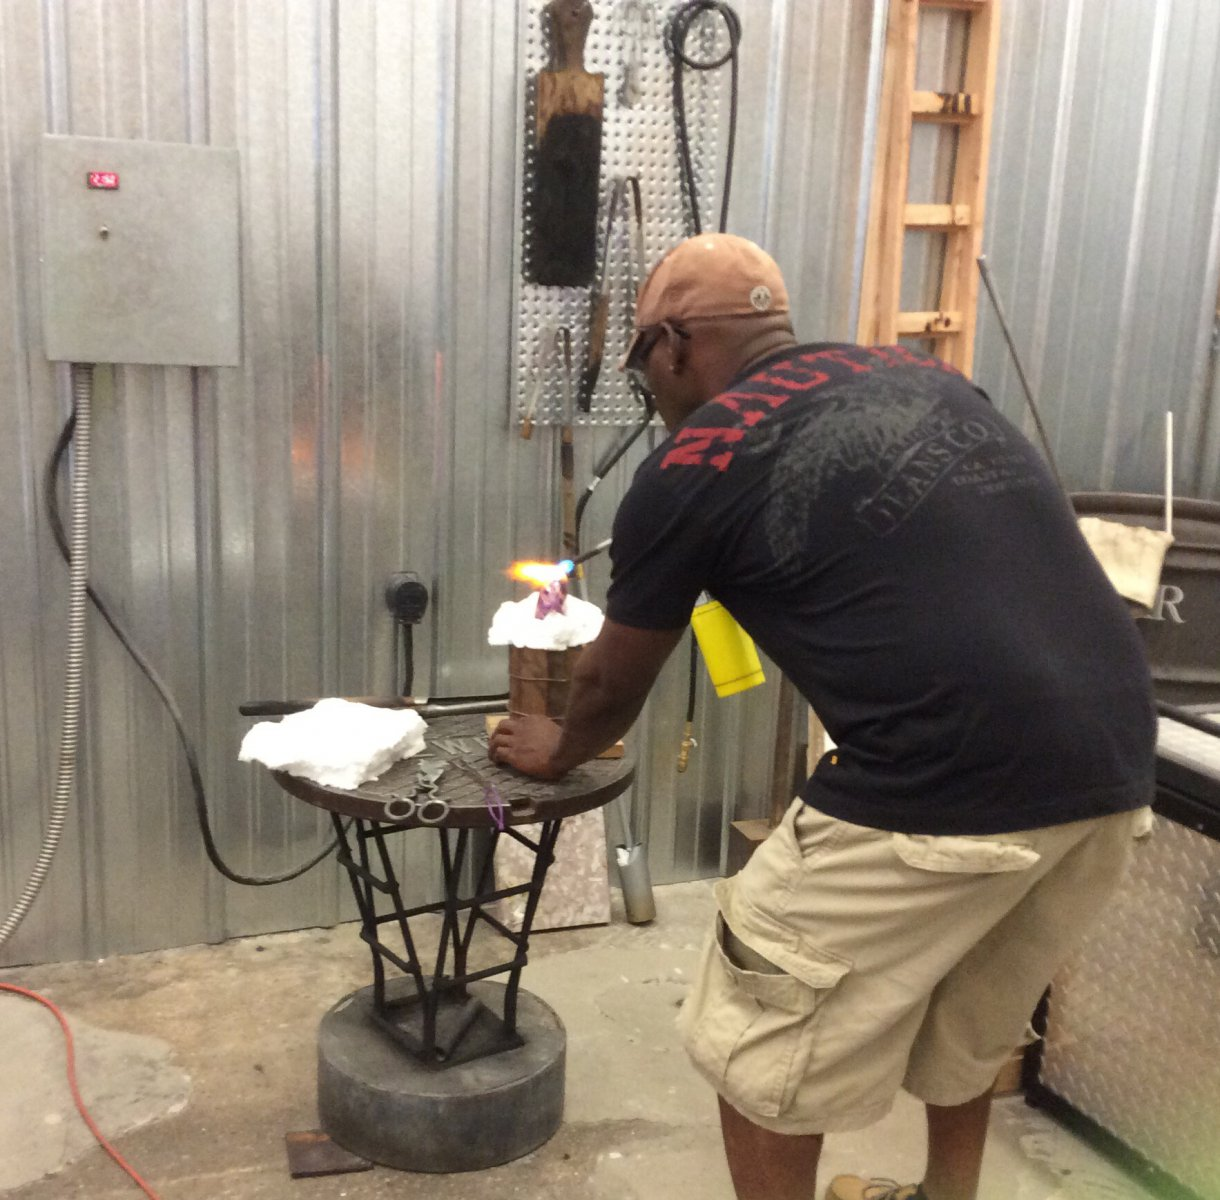 Glass blowing event for 50+ SAGE organized by LGBT center.